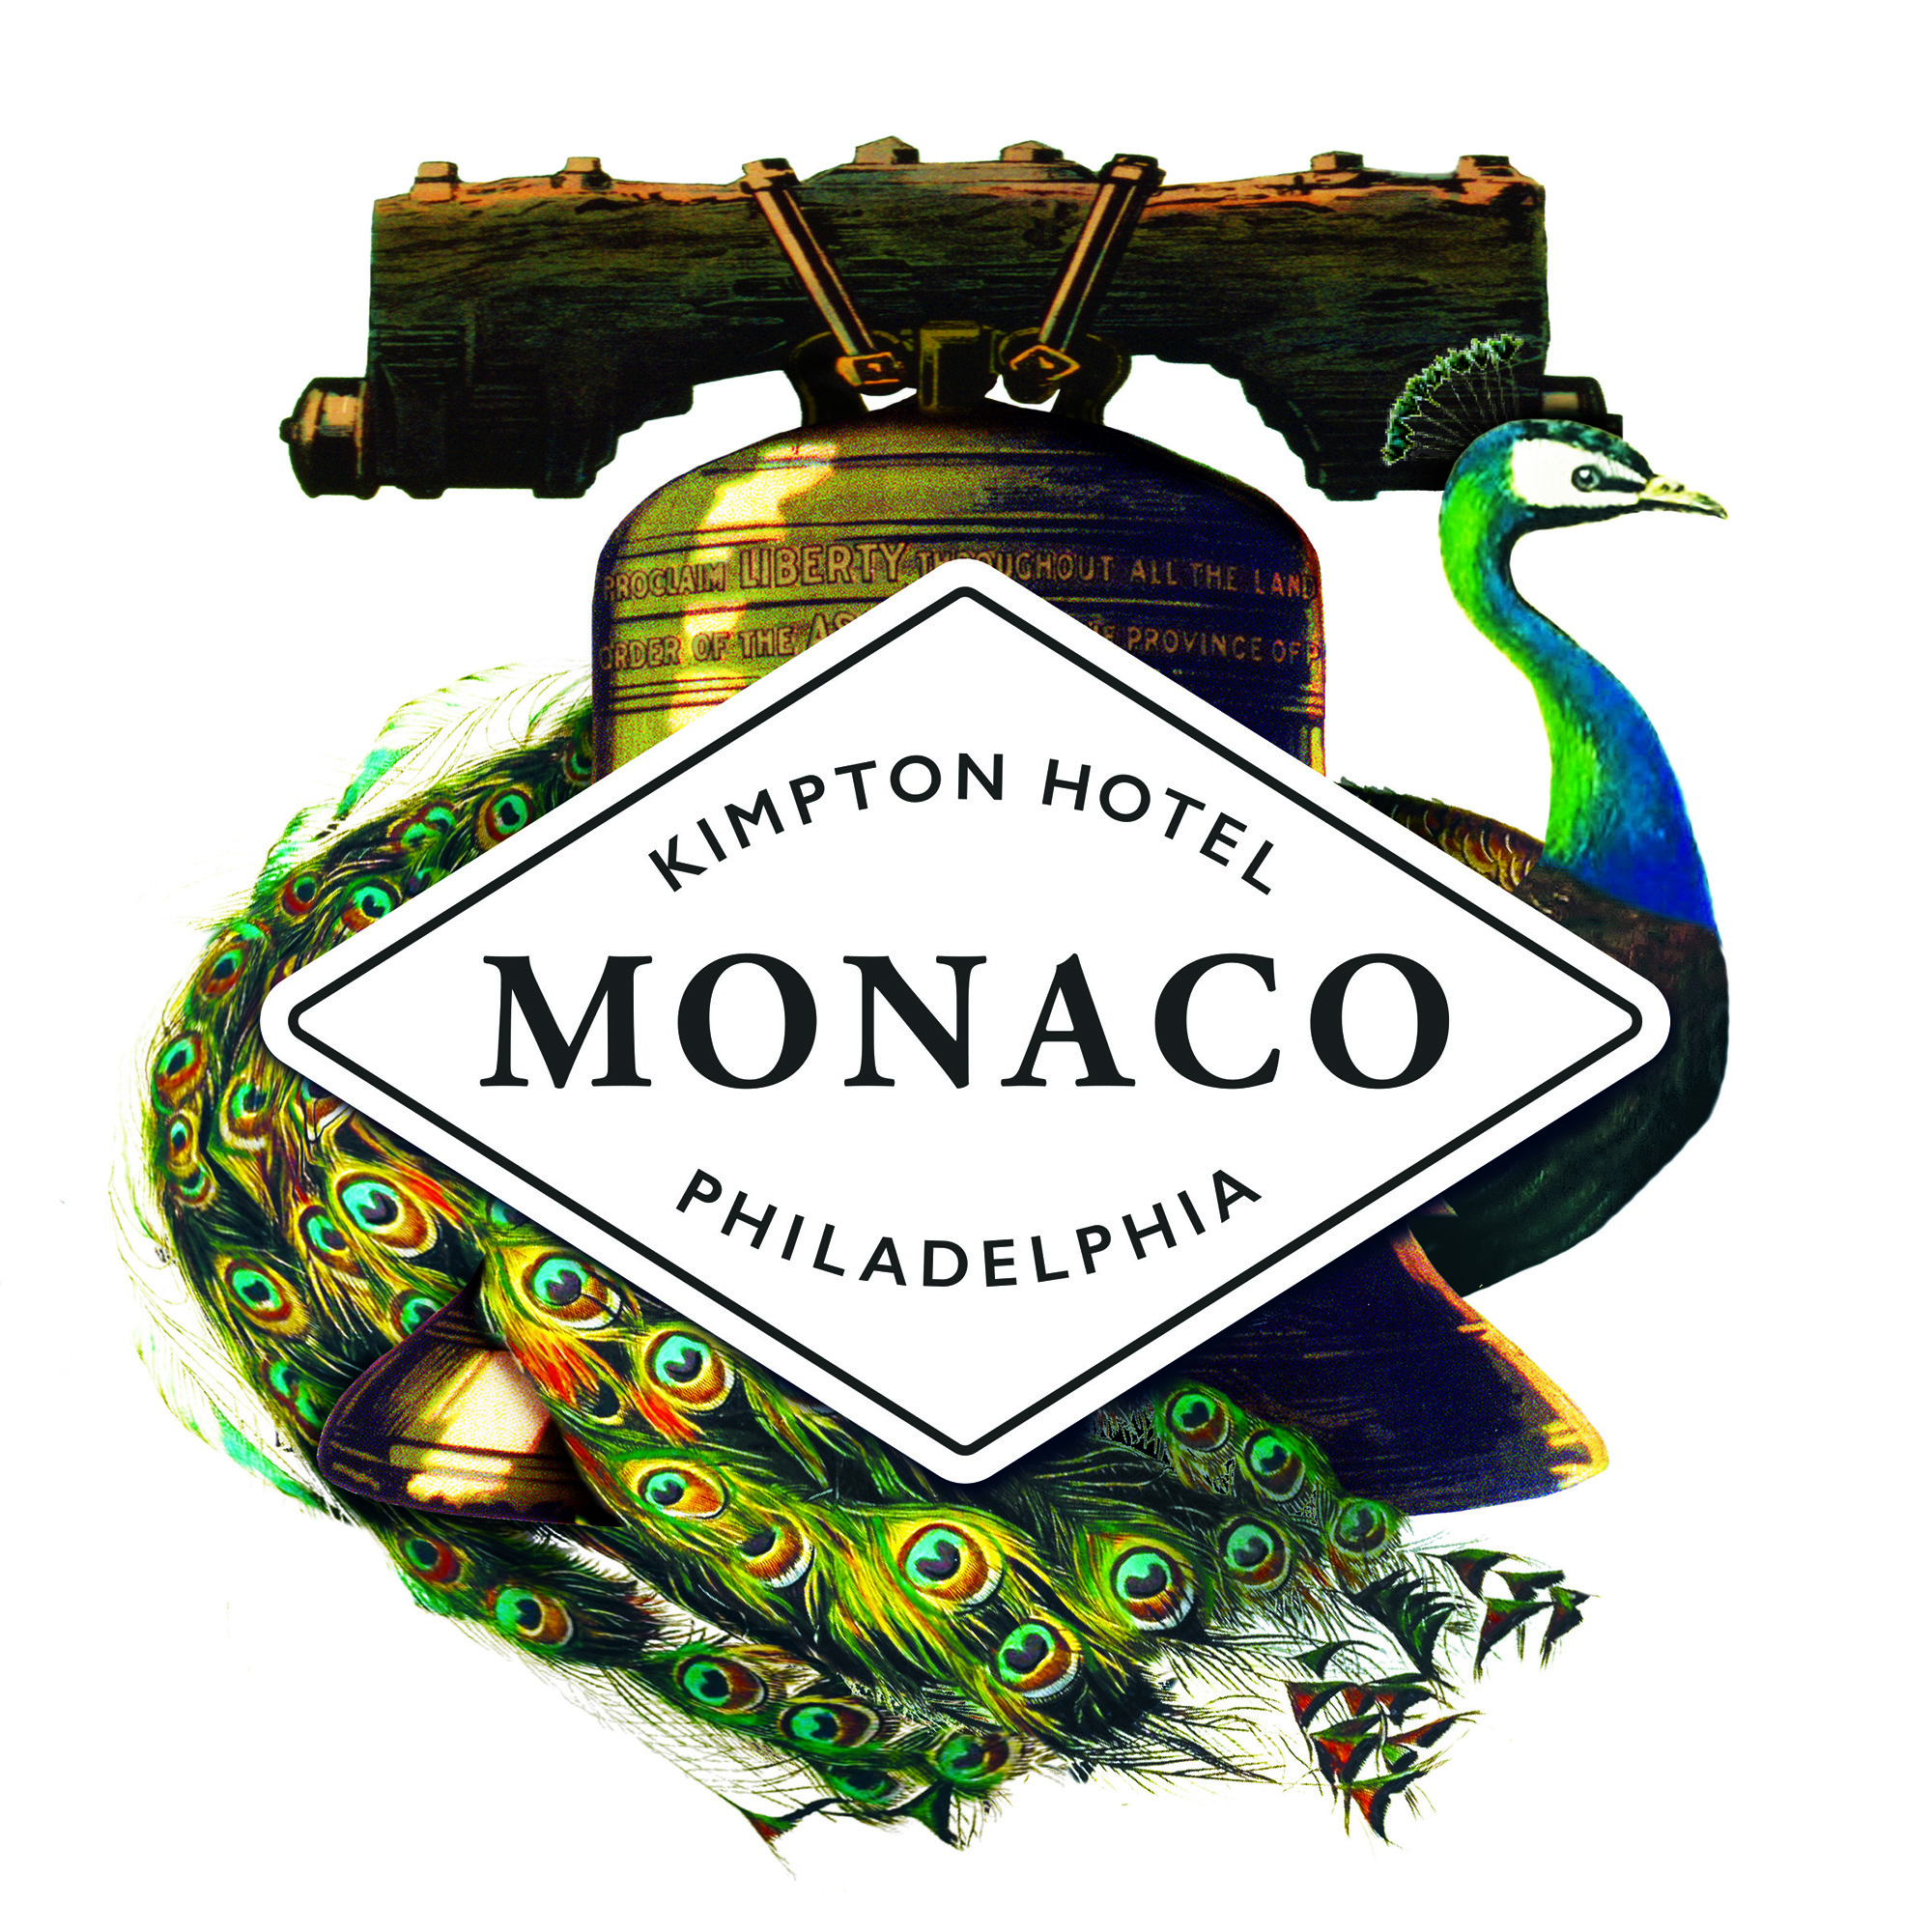 Monaco_Philadelphia_Collection_White_WhiteBackground.jpg